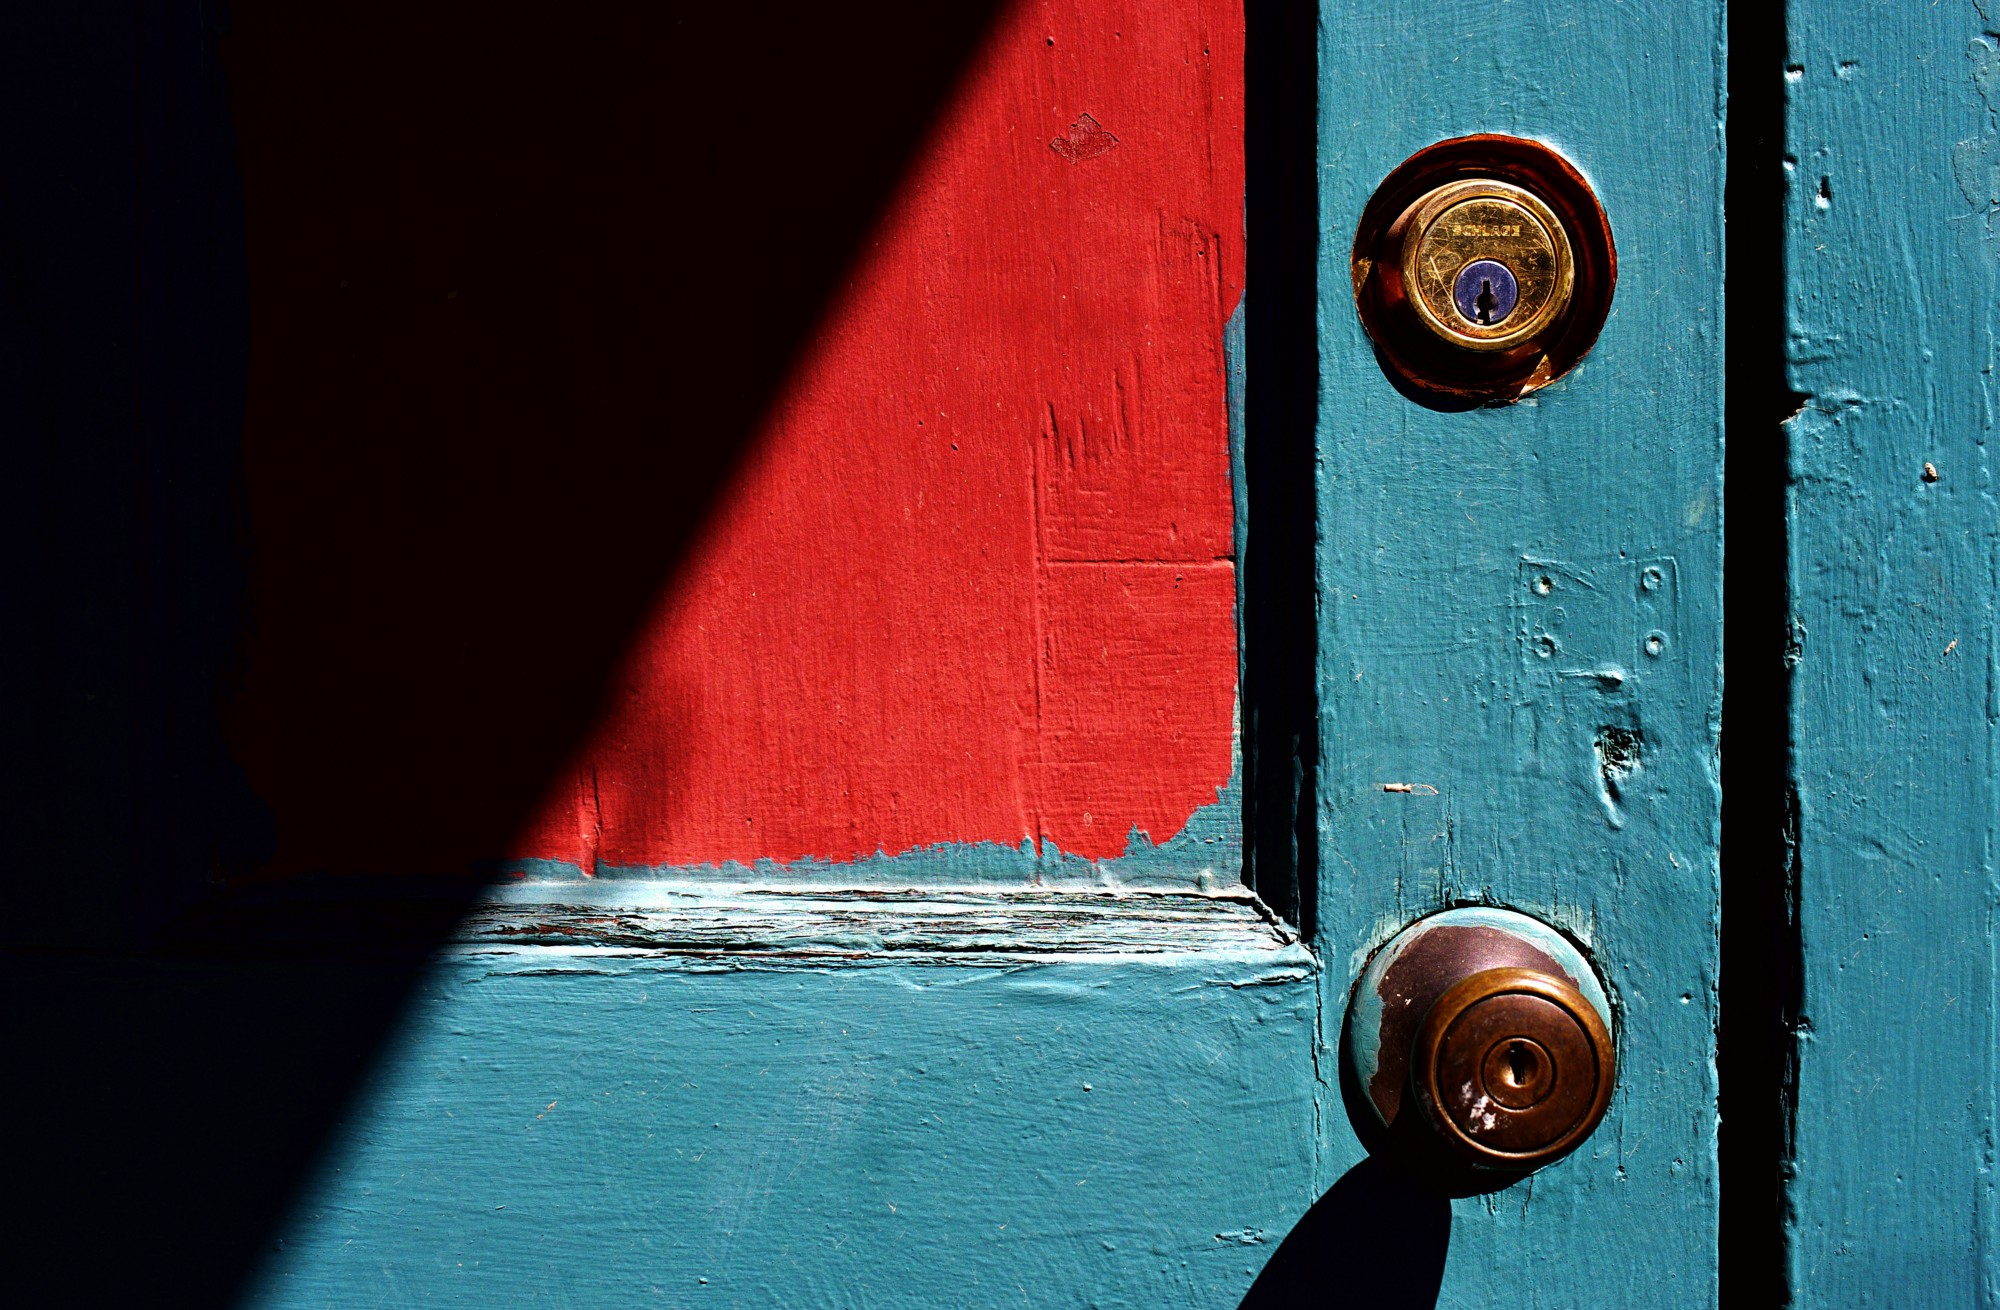 A battered door painted bright blue and red sports a brass doorknob and deadbolt.